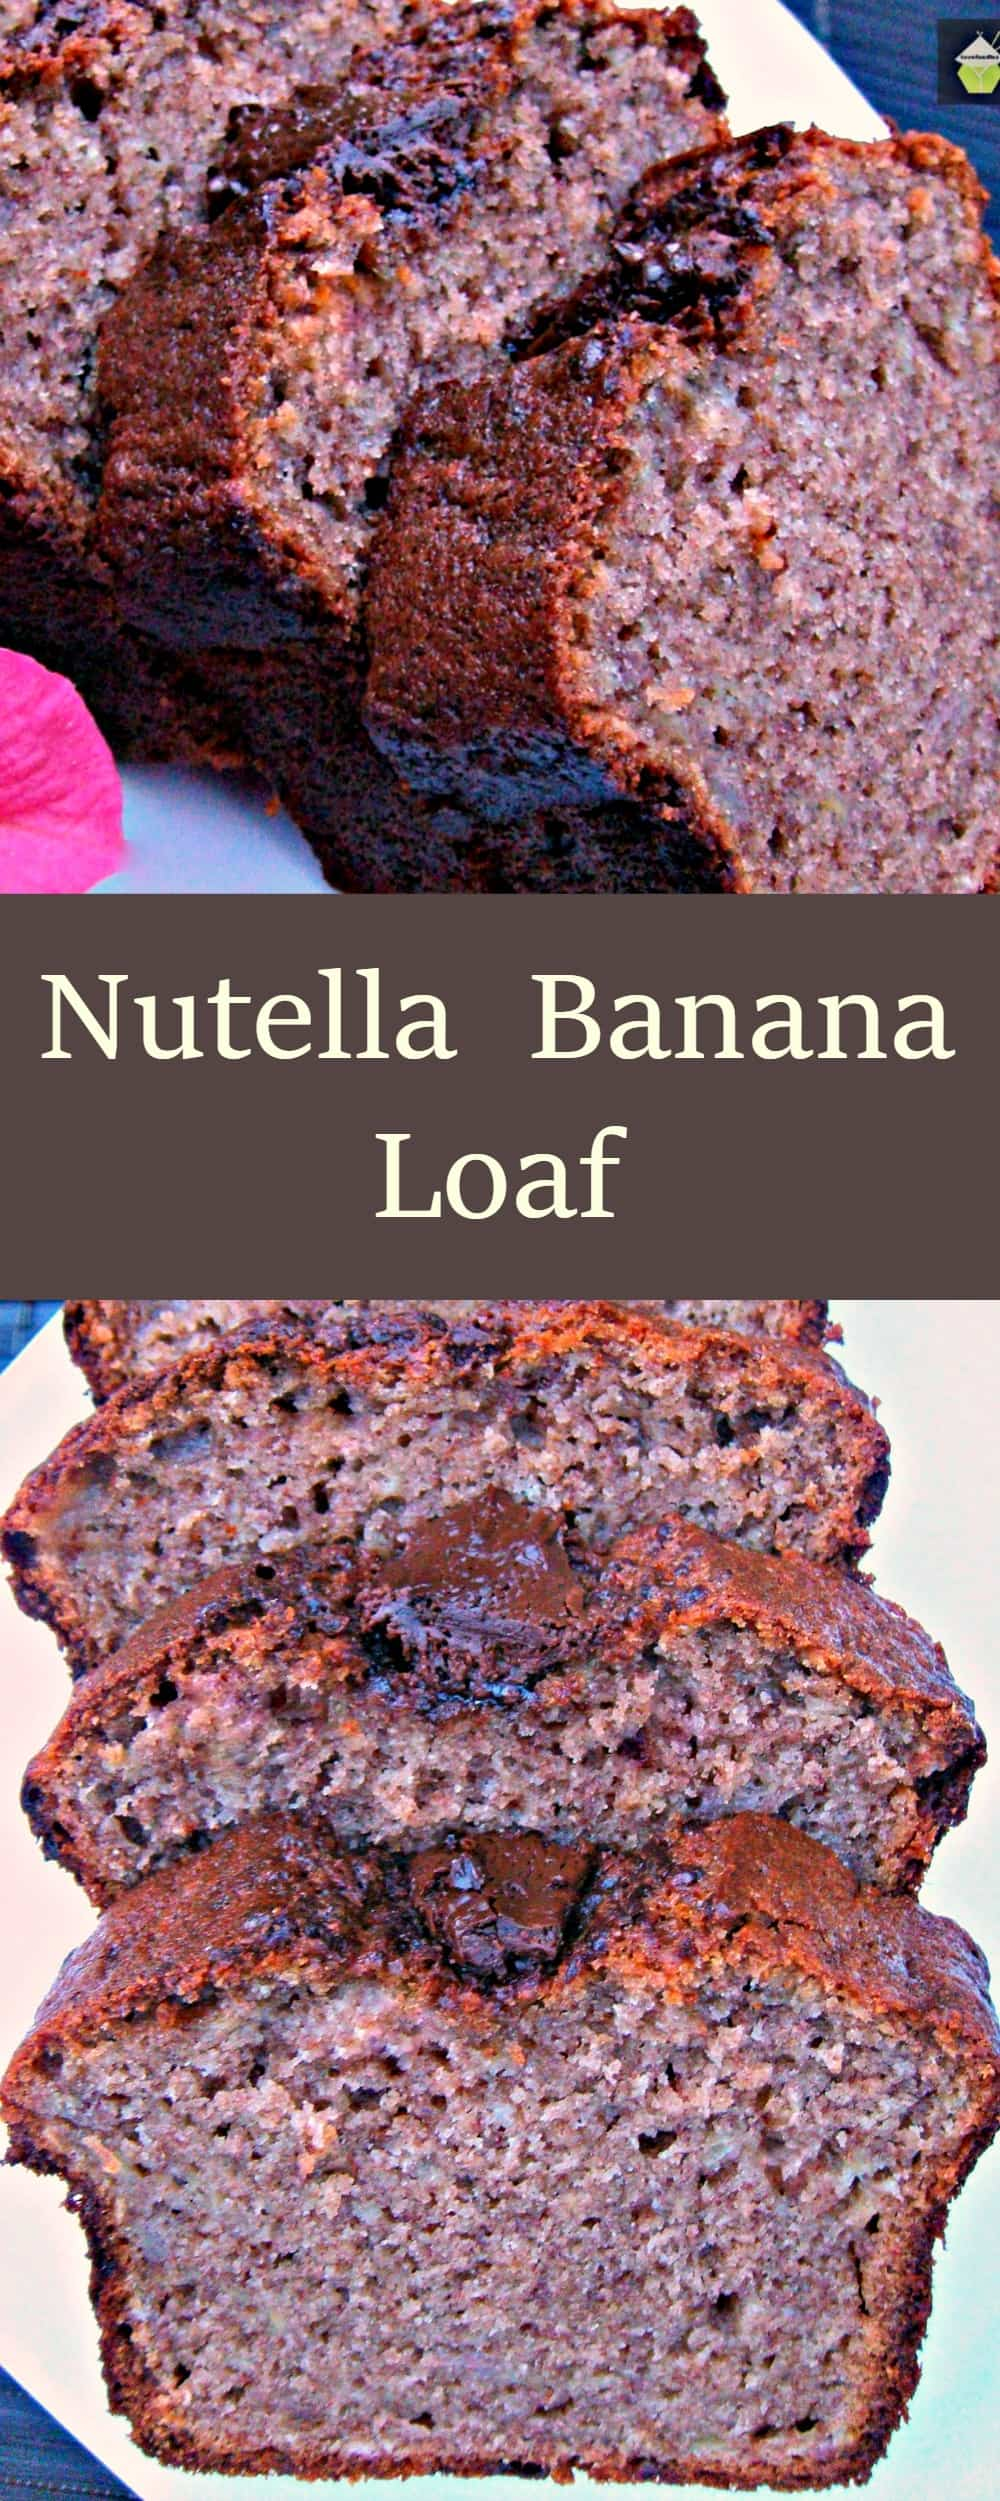 Nutella Banana Loaf. Delicious, moist and, well... Nutella!